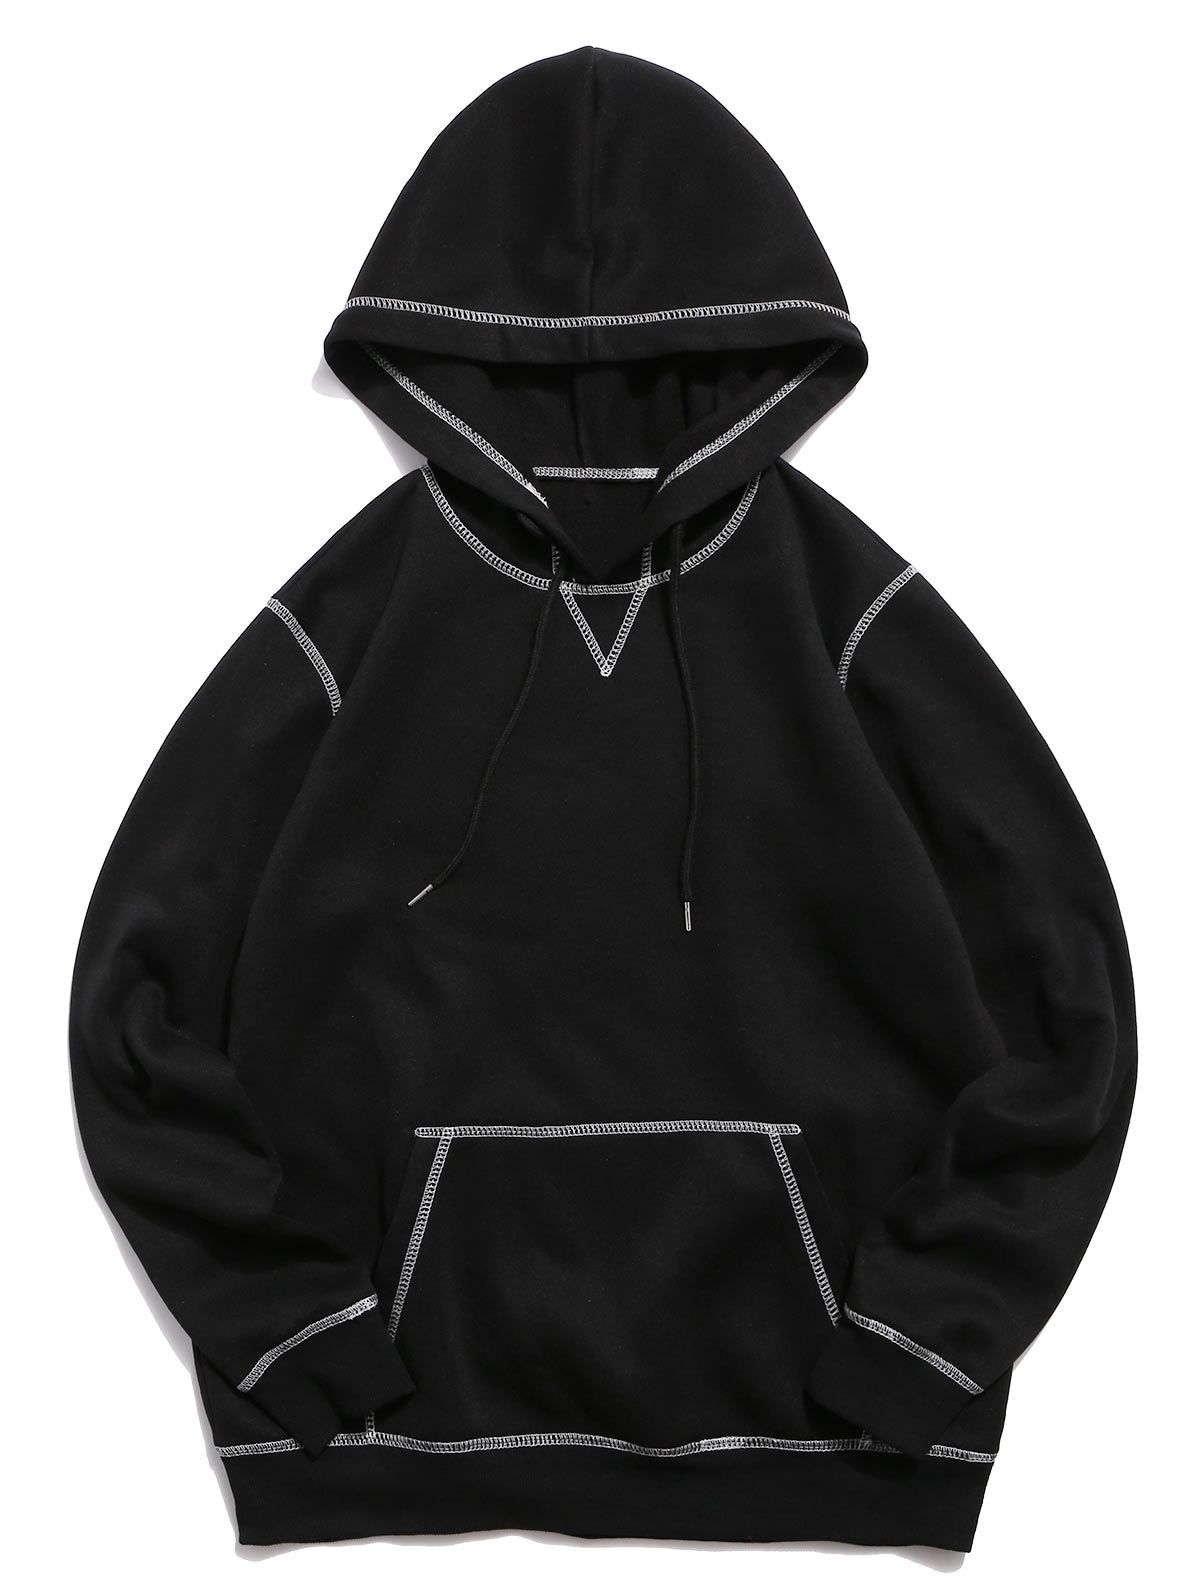 Stitching Decorated Solid Color Casual Hoodie Black Aff Solid Decorated Stitching Color Black Ad Casual Hoodie Hoodies Black Hoodie [ 1596 x 1200 Pixel ]